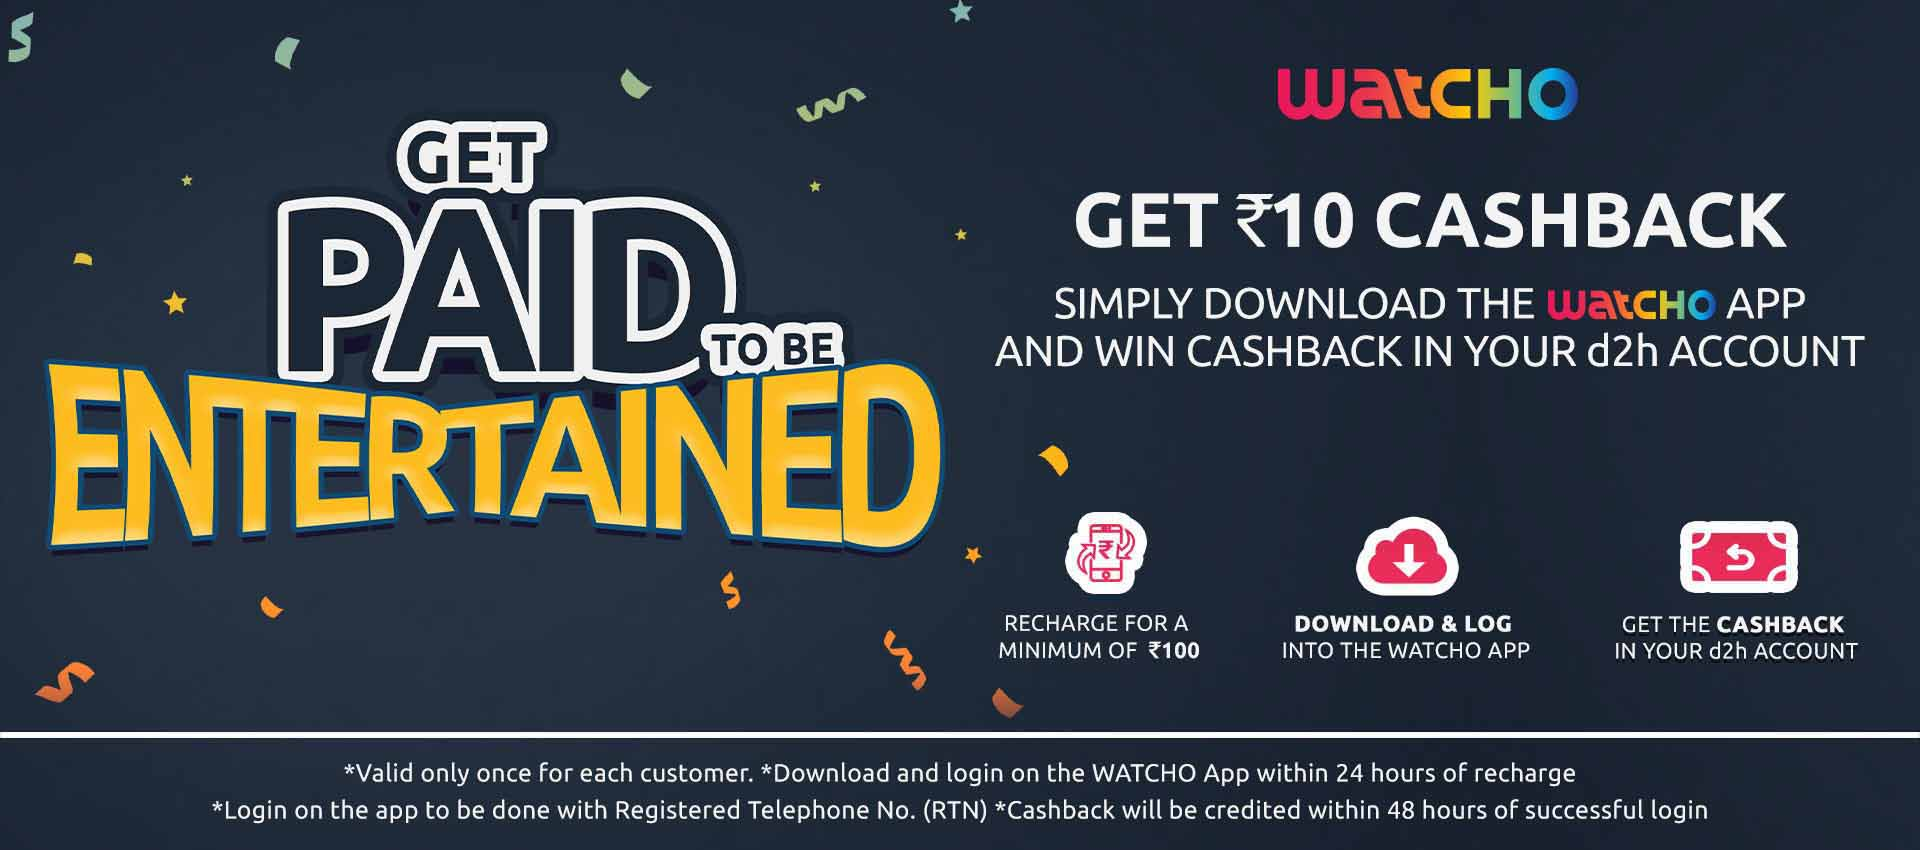 Dish TV and d2h offering Rs 10 cashback on downloading Watcho app